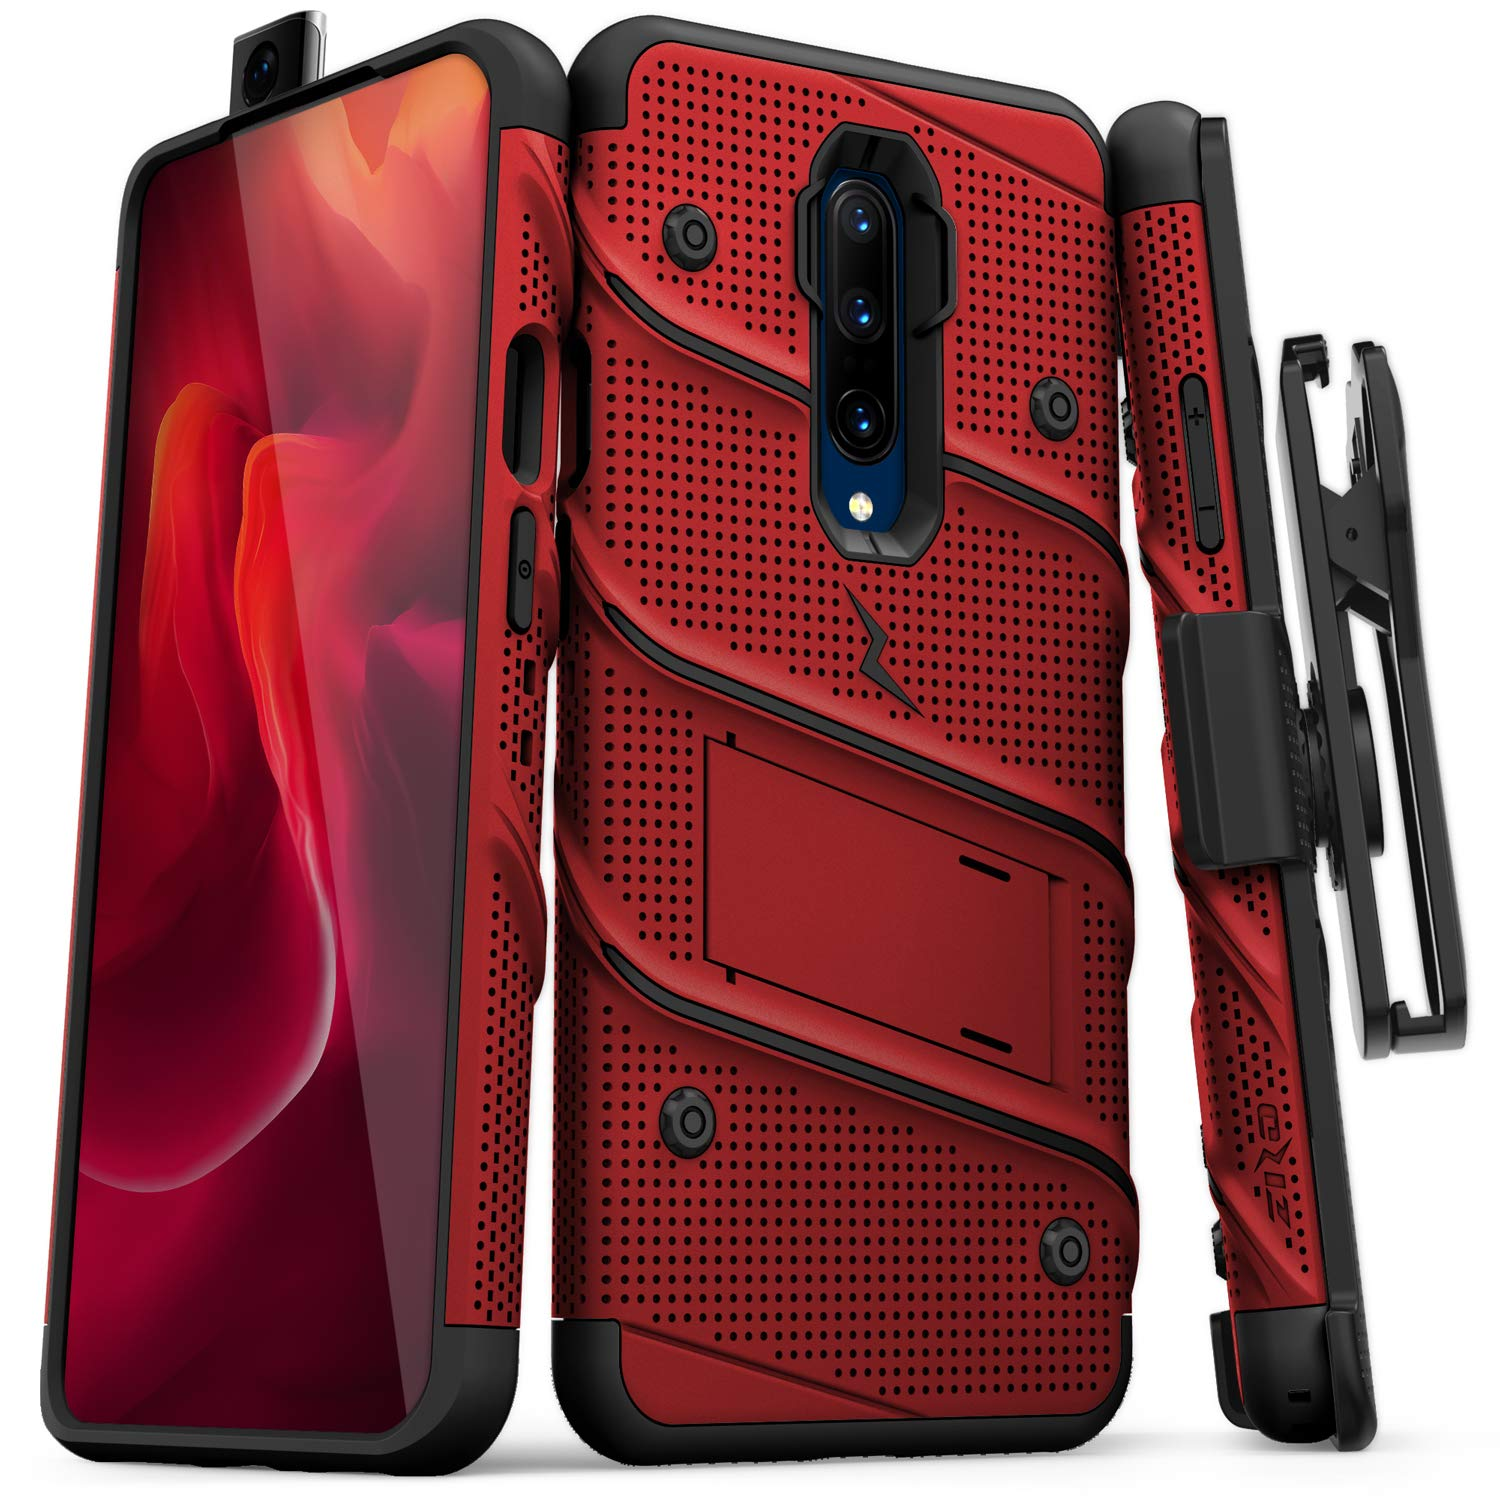 ZIZO Bolt Heavy-Duty OnePlus 7 Pro Case | Military-Grade Drop Protection w/Kickstand Bundle Includes Belt Clip Holster + Lanyard Red Black